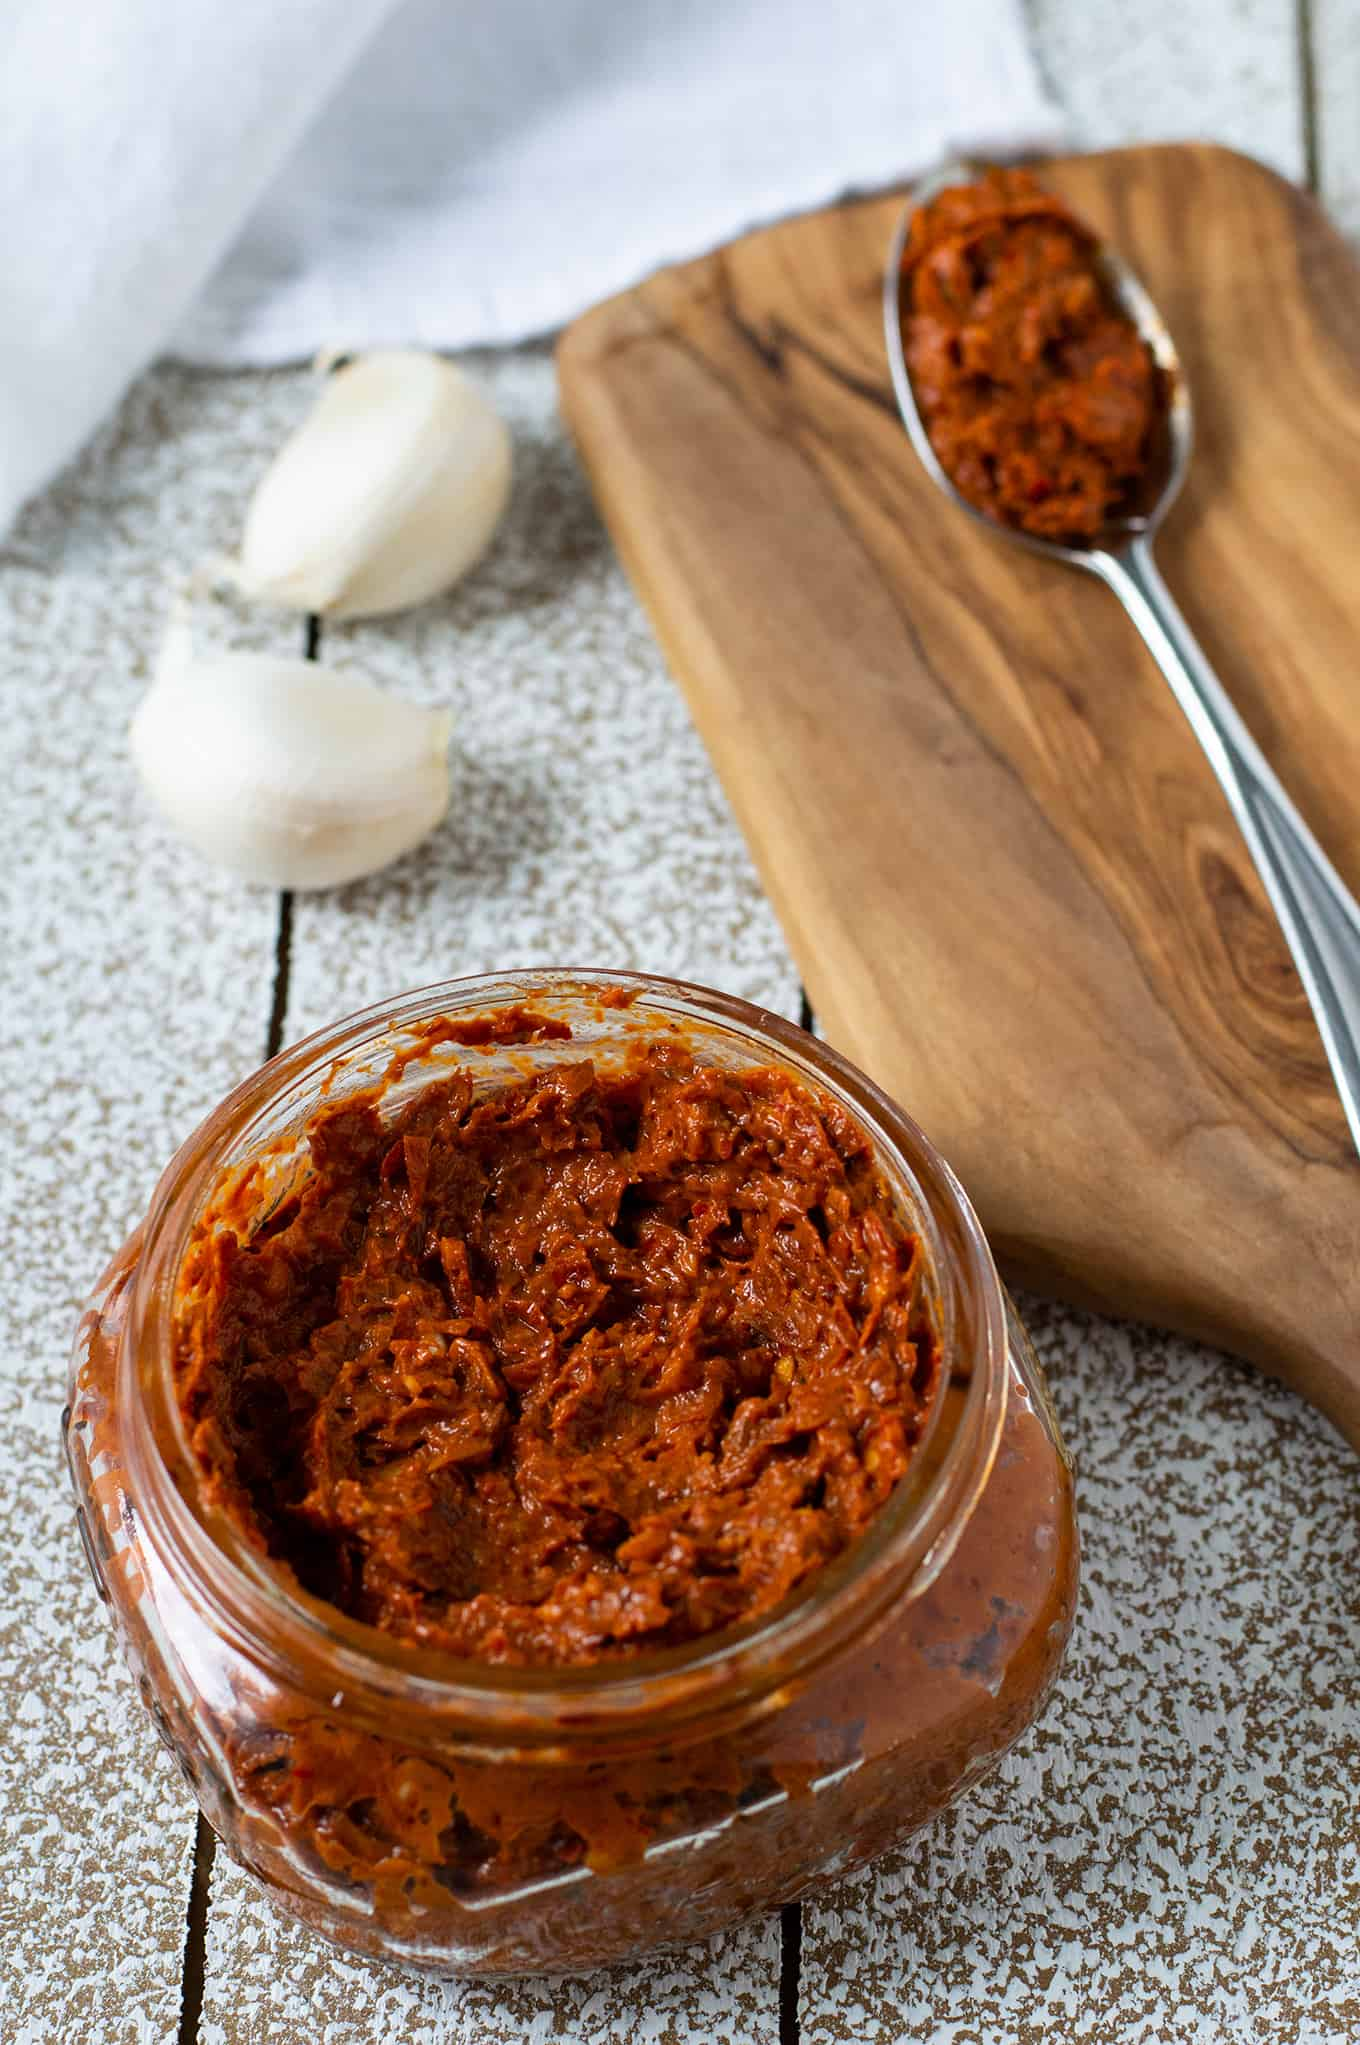 A small jar of harissa paste with a spoon of harissa paste on a table.